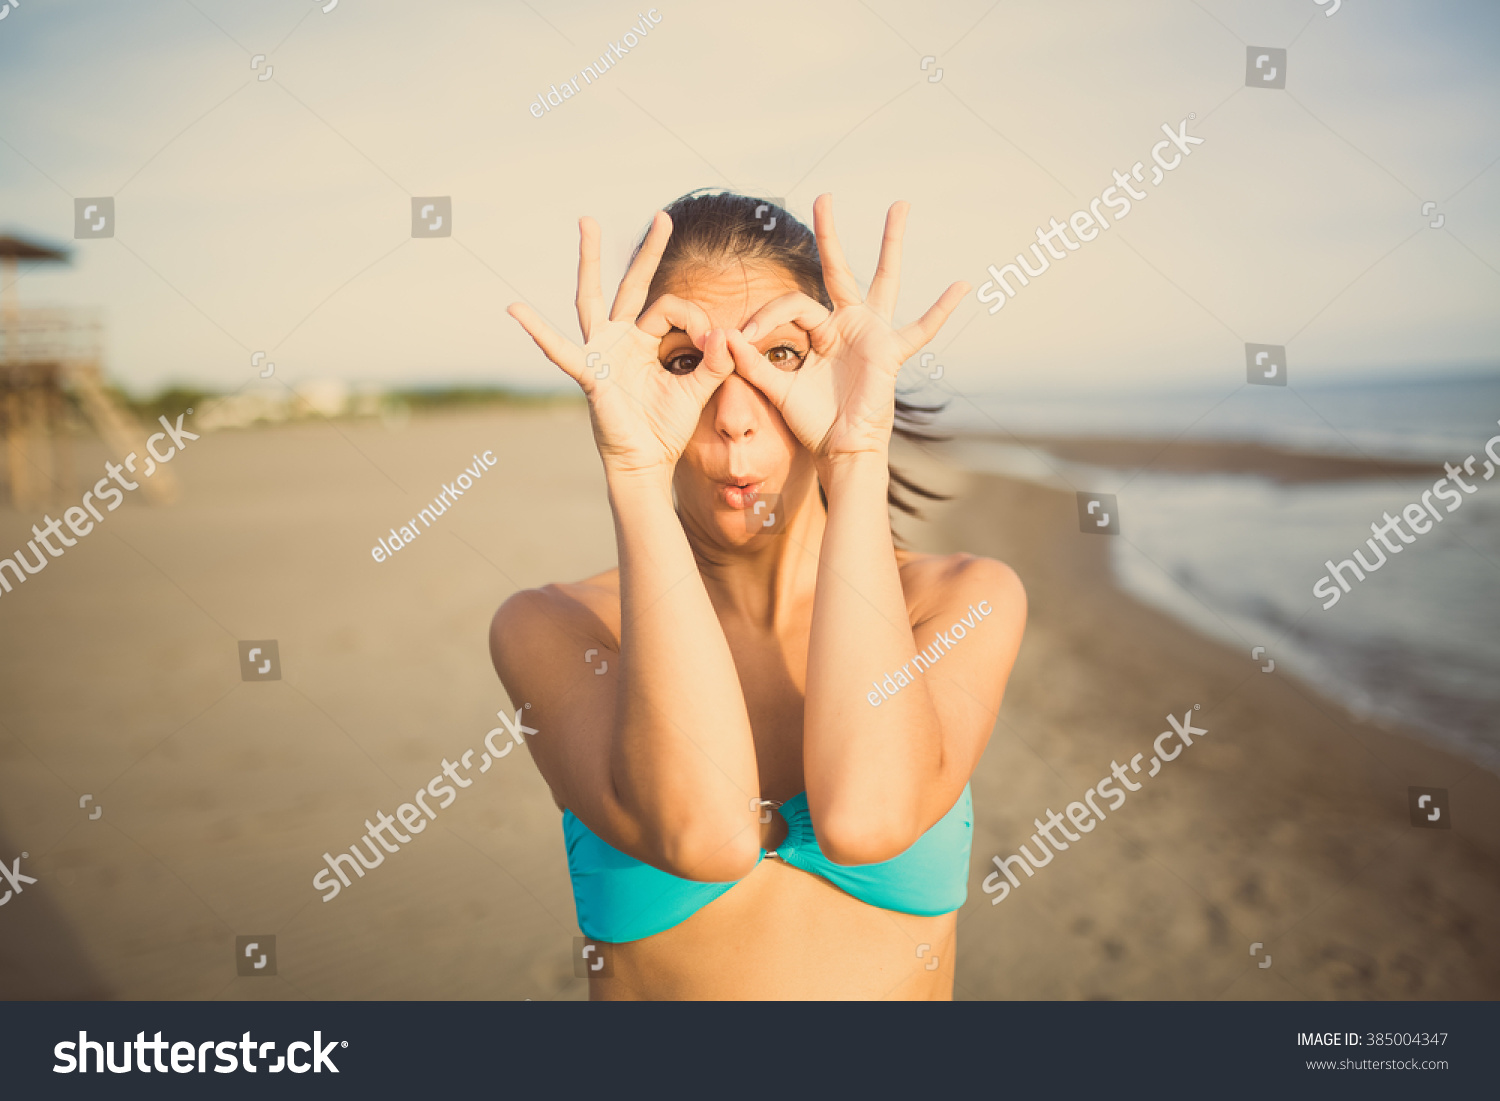 Grimace face clip art stock photo woman pulls a face in upset - Silly Young Woman Grimacing And Having Fun On The Beach Enjoying Summer Vacation Holiday Happy